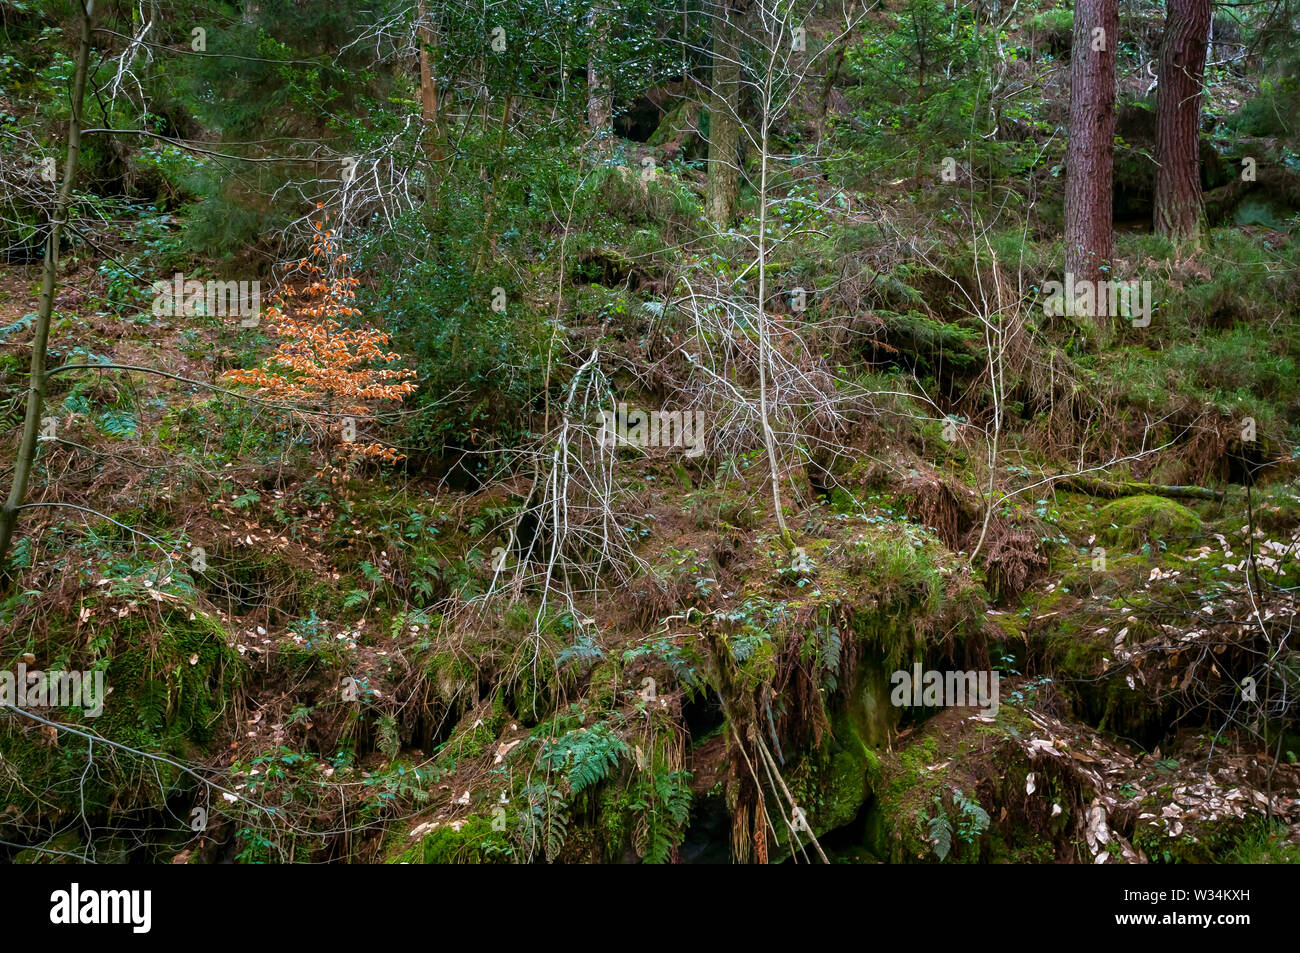 Detail scene of tree trunks, branches and mosses at Wyming Brook Gorge on the outskirts of Sheffield, South Yorkshire. Stock Photo